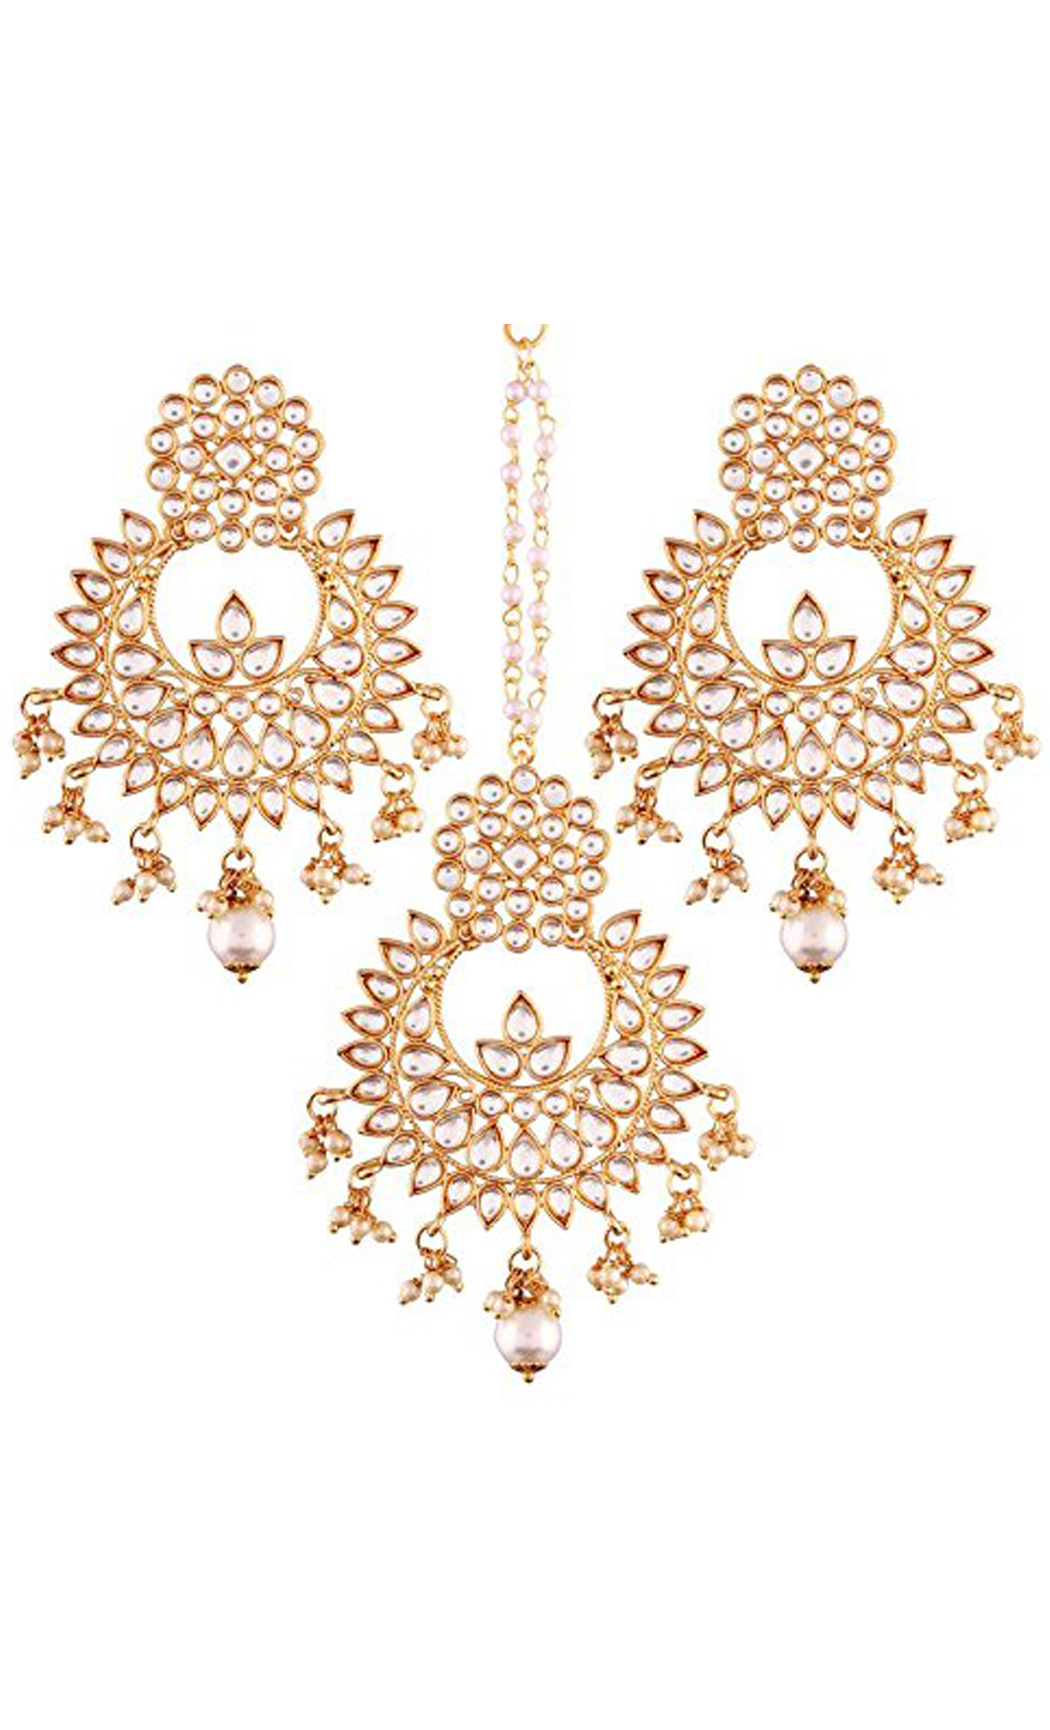 Kundan Chaandbali Earrings and Gold Maang Tikka Set | Indian Bridal Jewellery Sets With Price